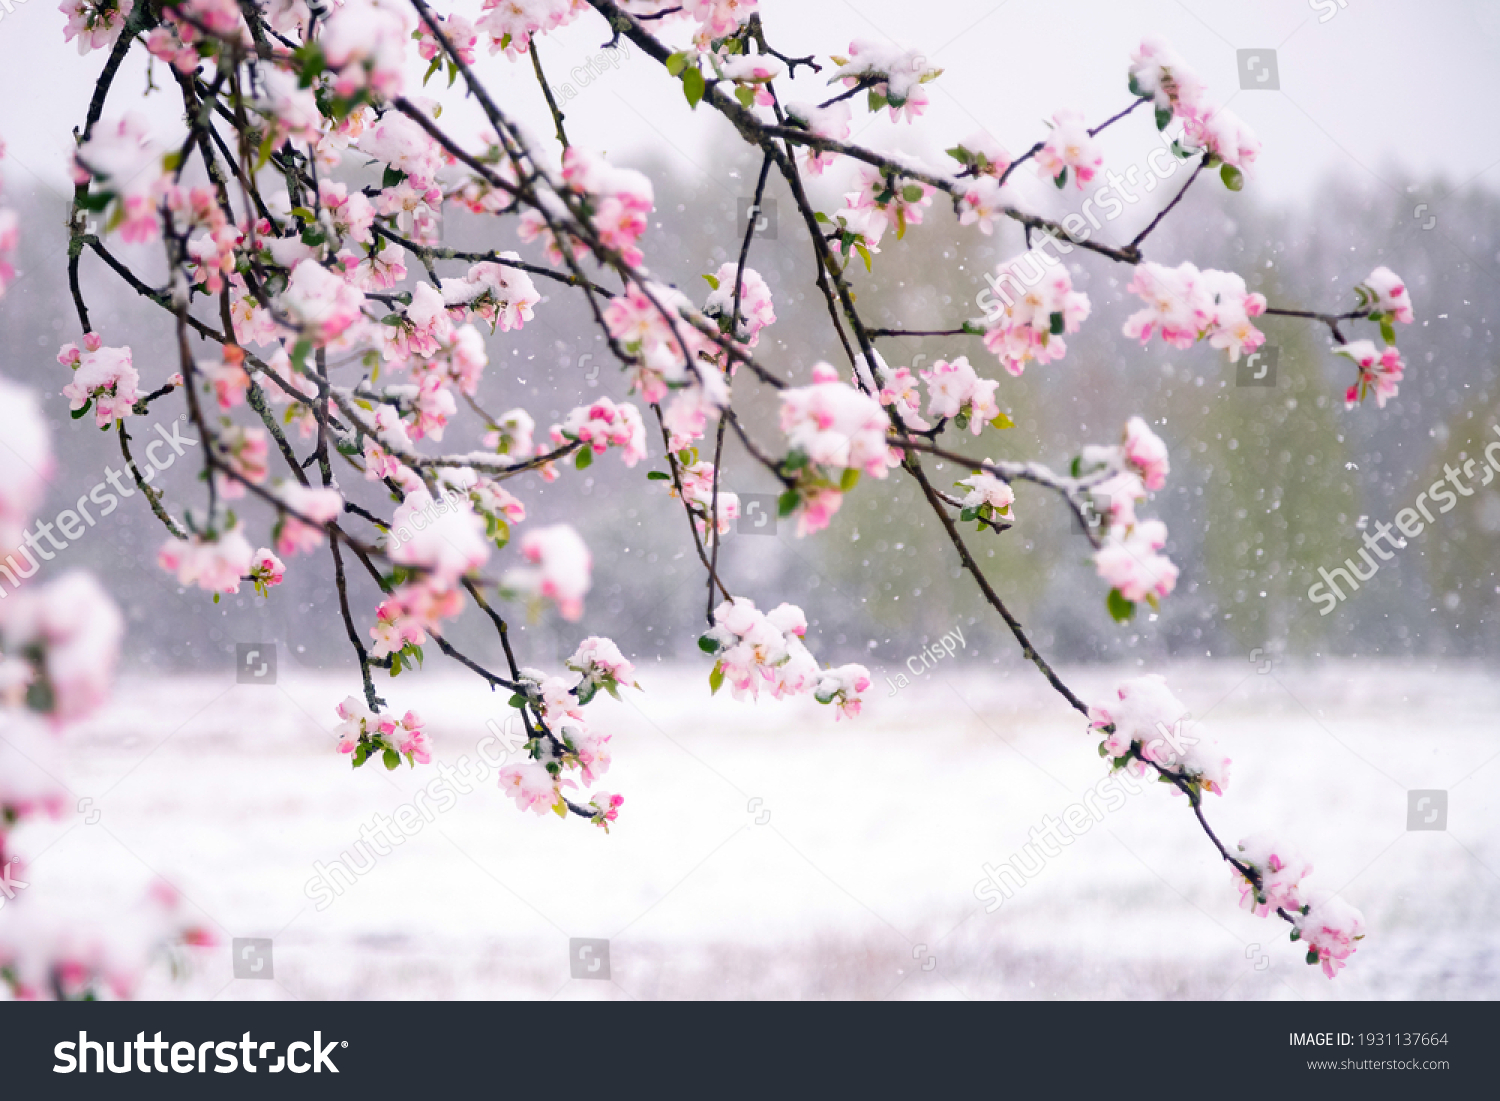 Apple tree blossoms covered in snow during unexpected snowfall in spring. Blooming flowers freezing under white snow in the garden. #1931137664